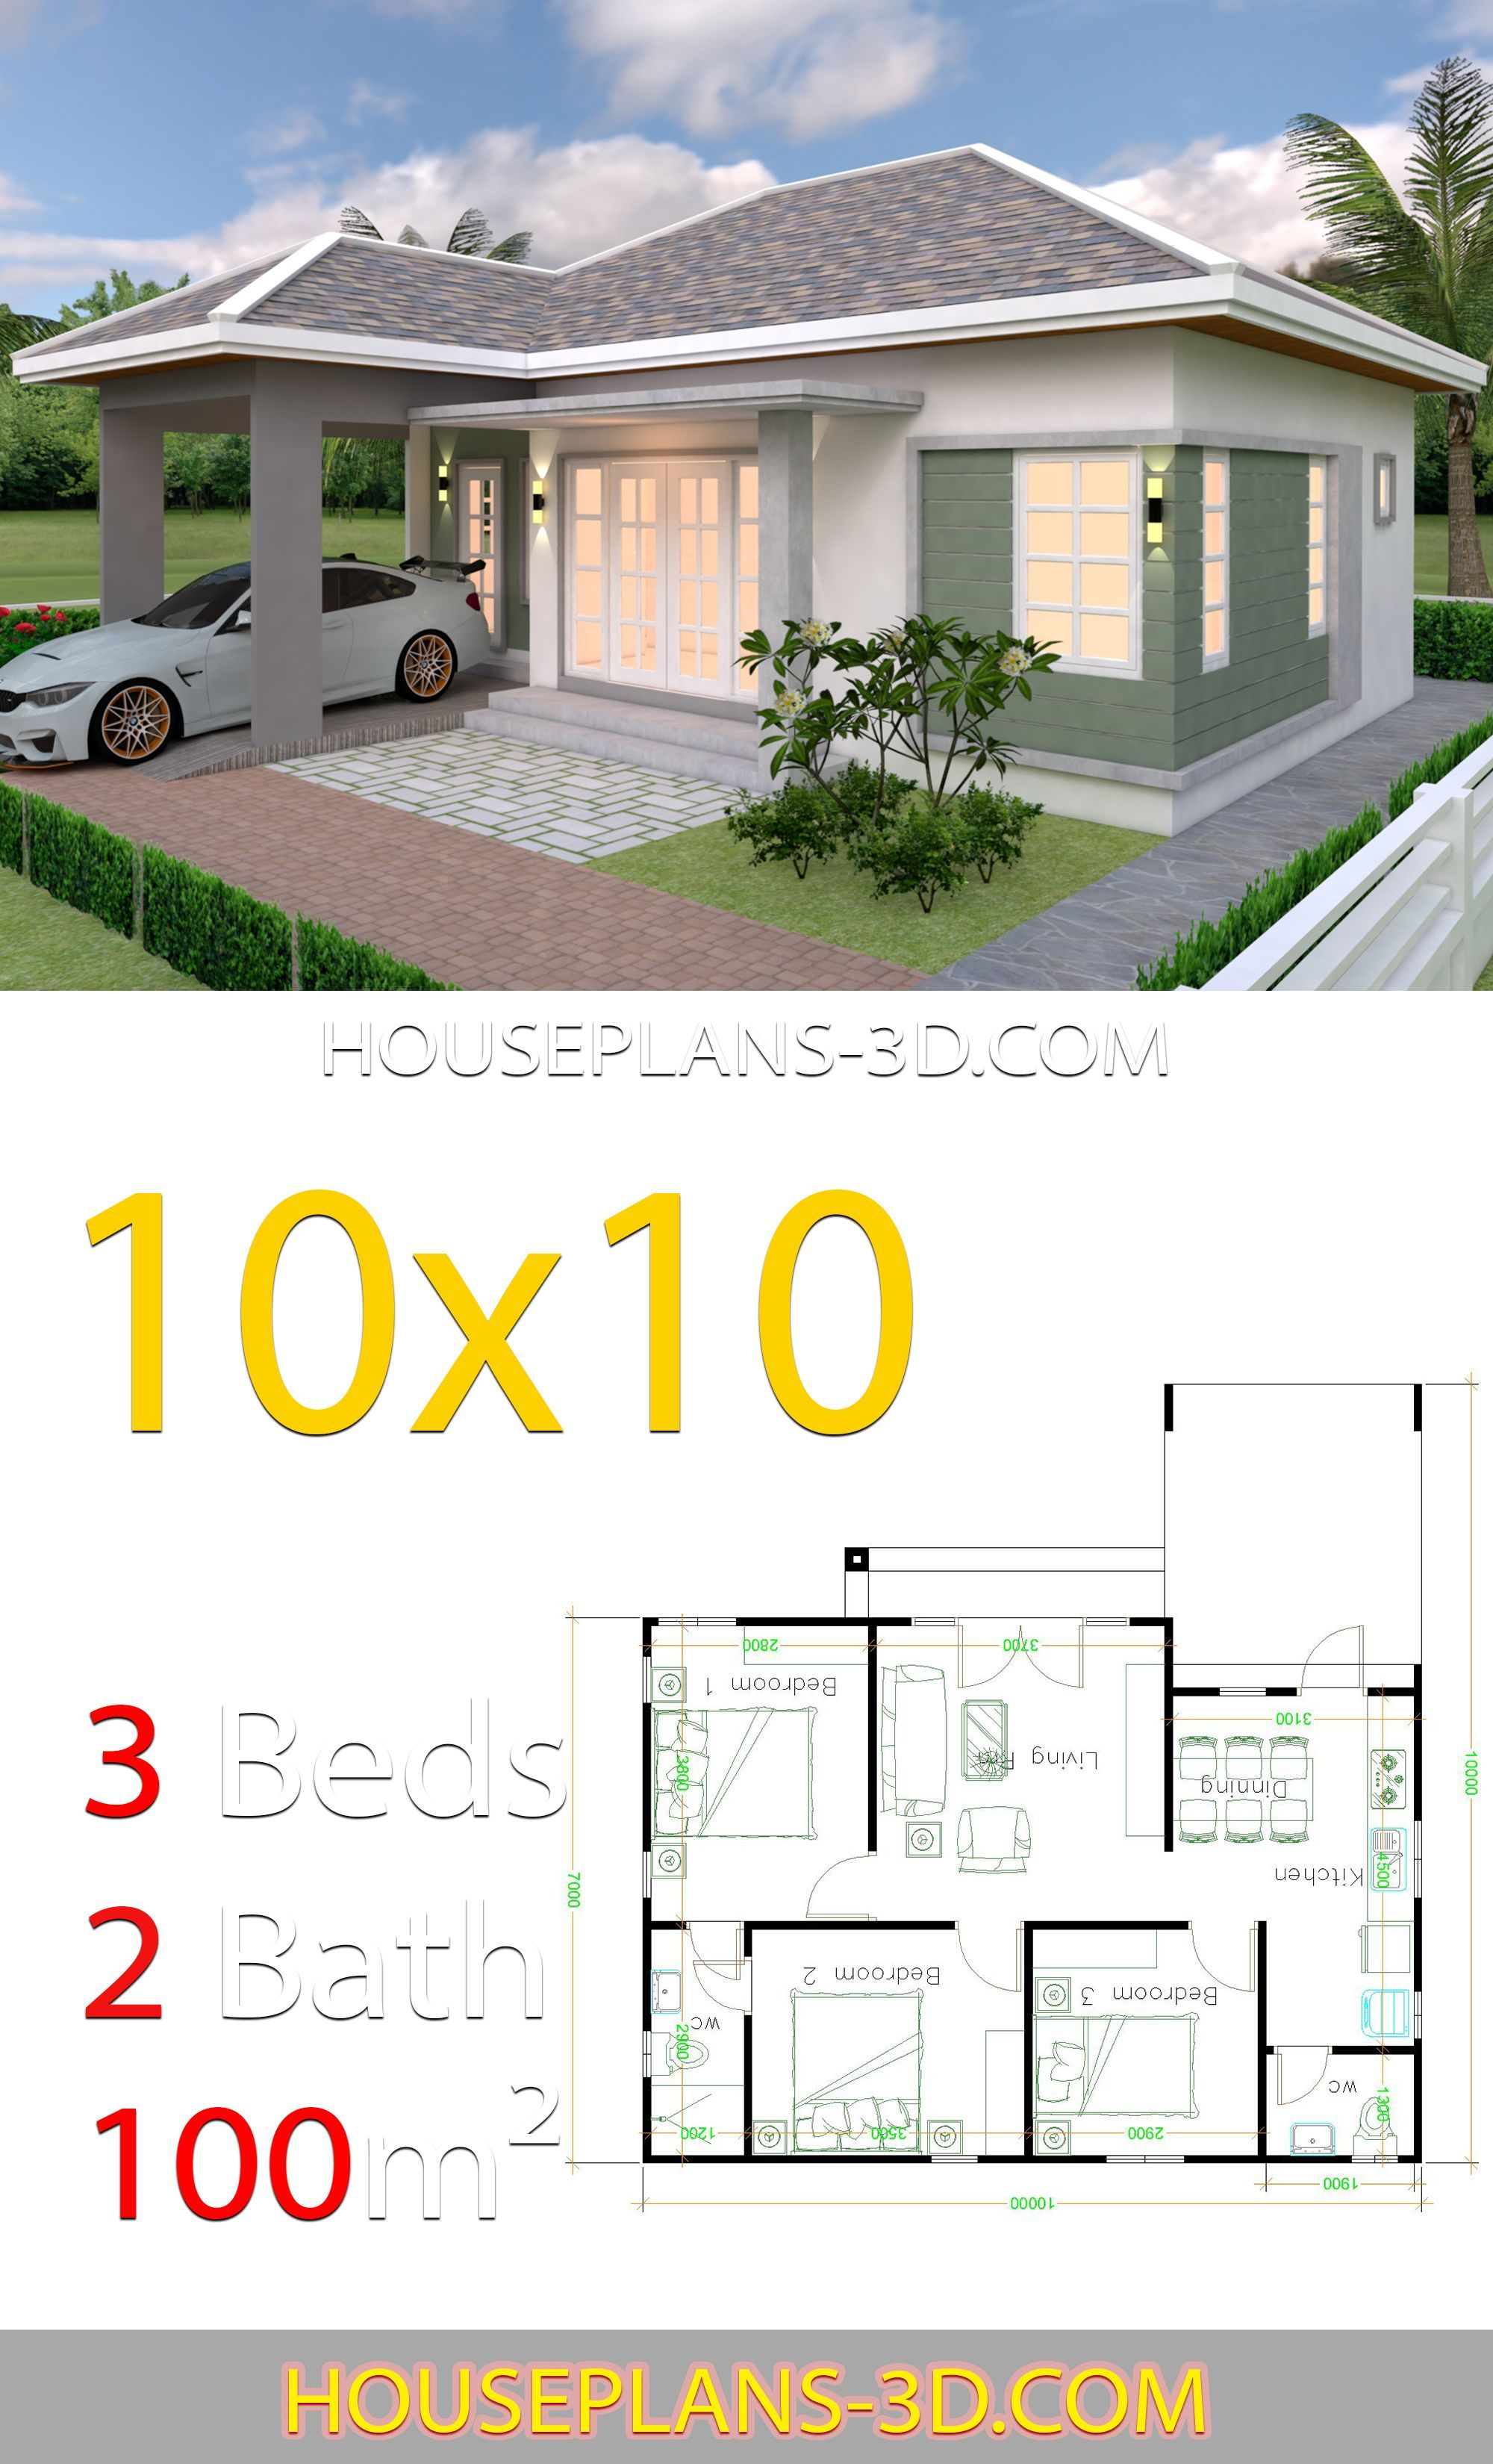 House Design 10x10 With 3 Bedrooms Hip Roof House Plans 3d House Fence Design Bungalow House Plans House Roof